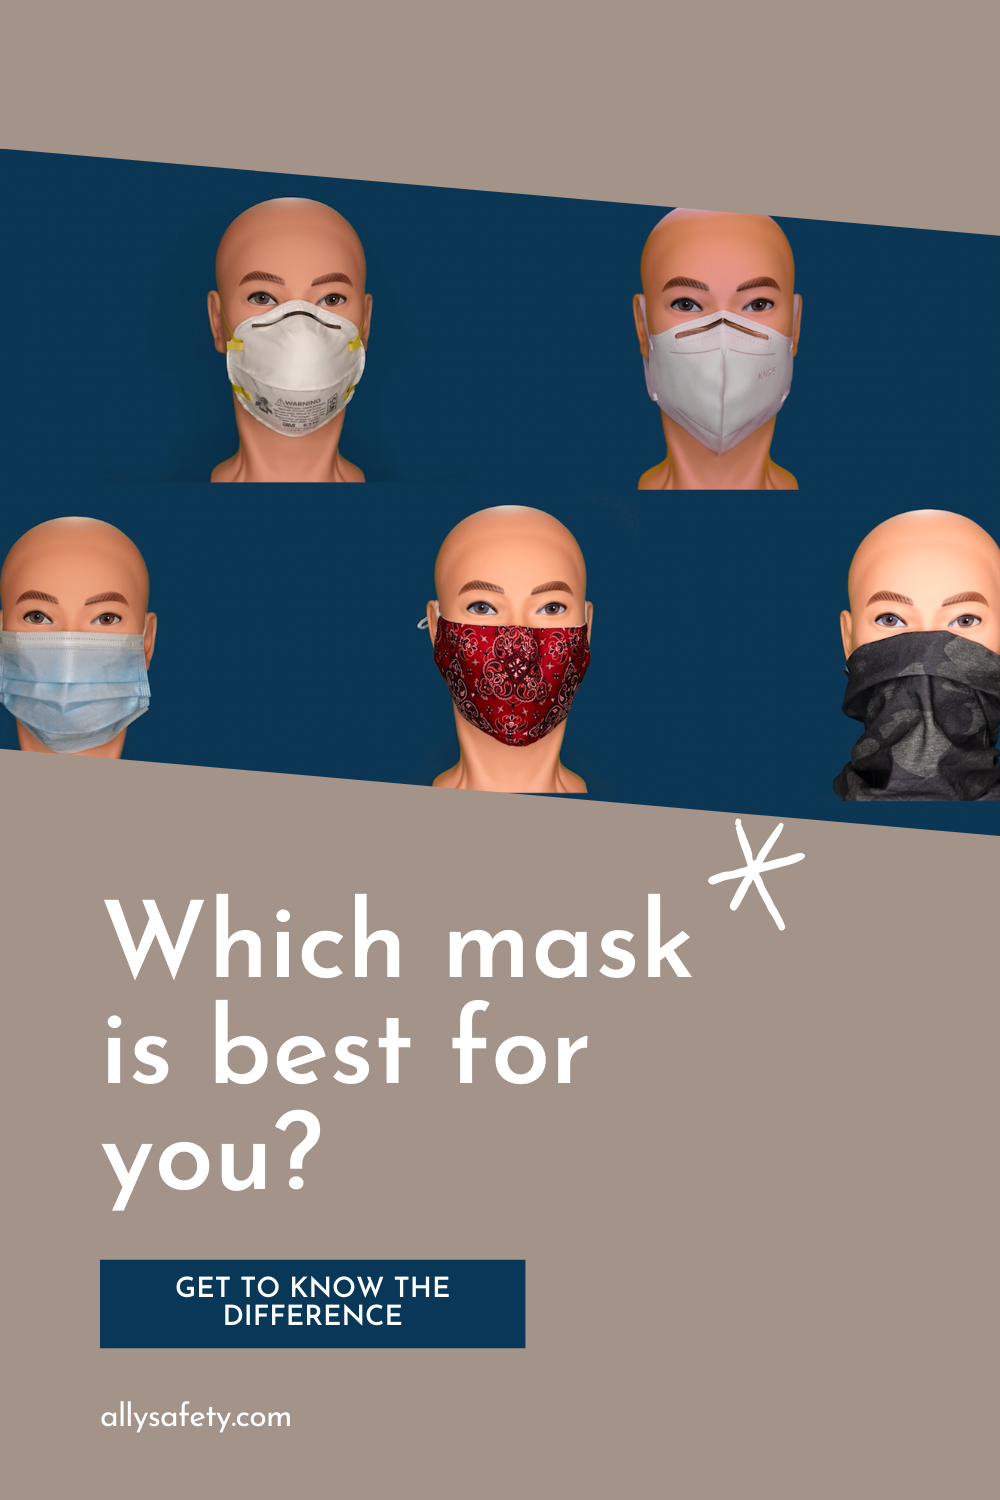 Which mask is best for you?